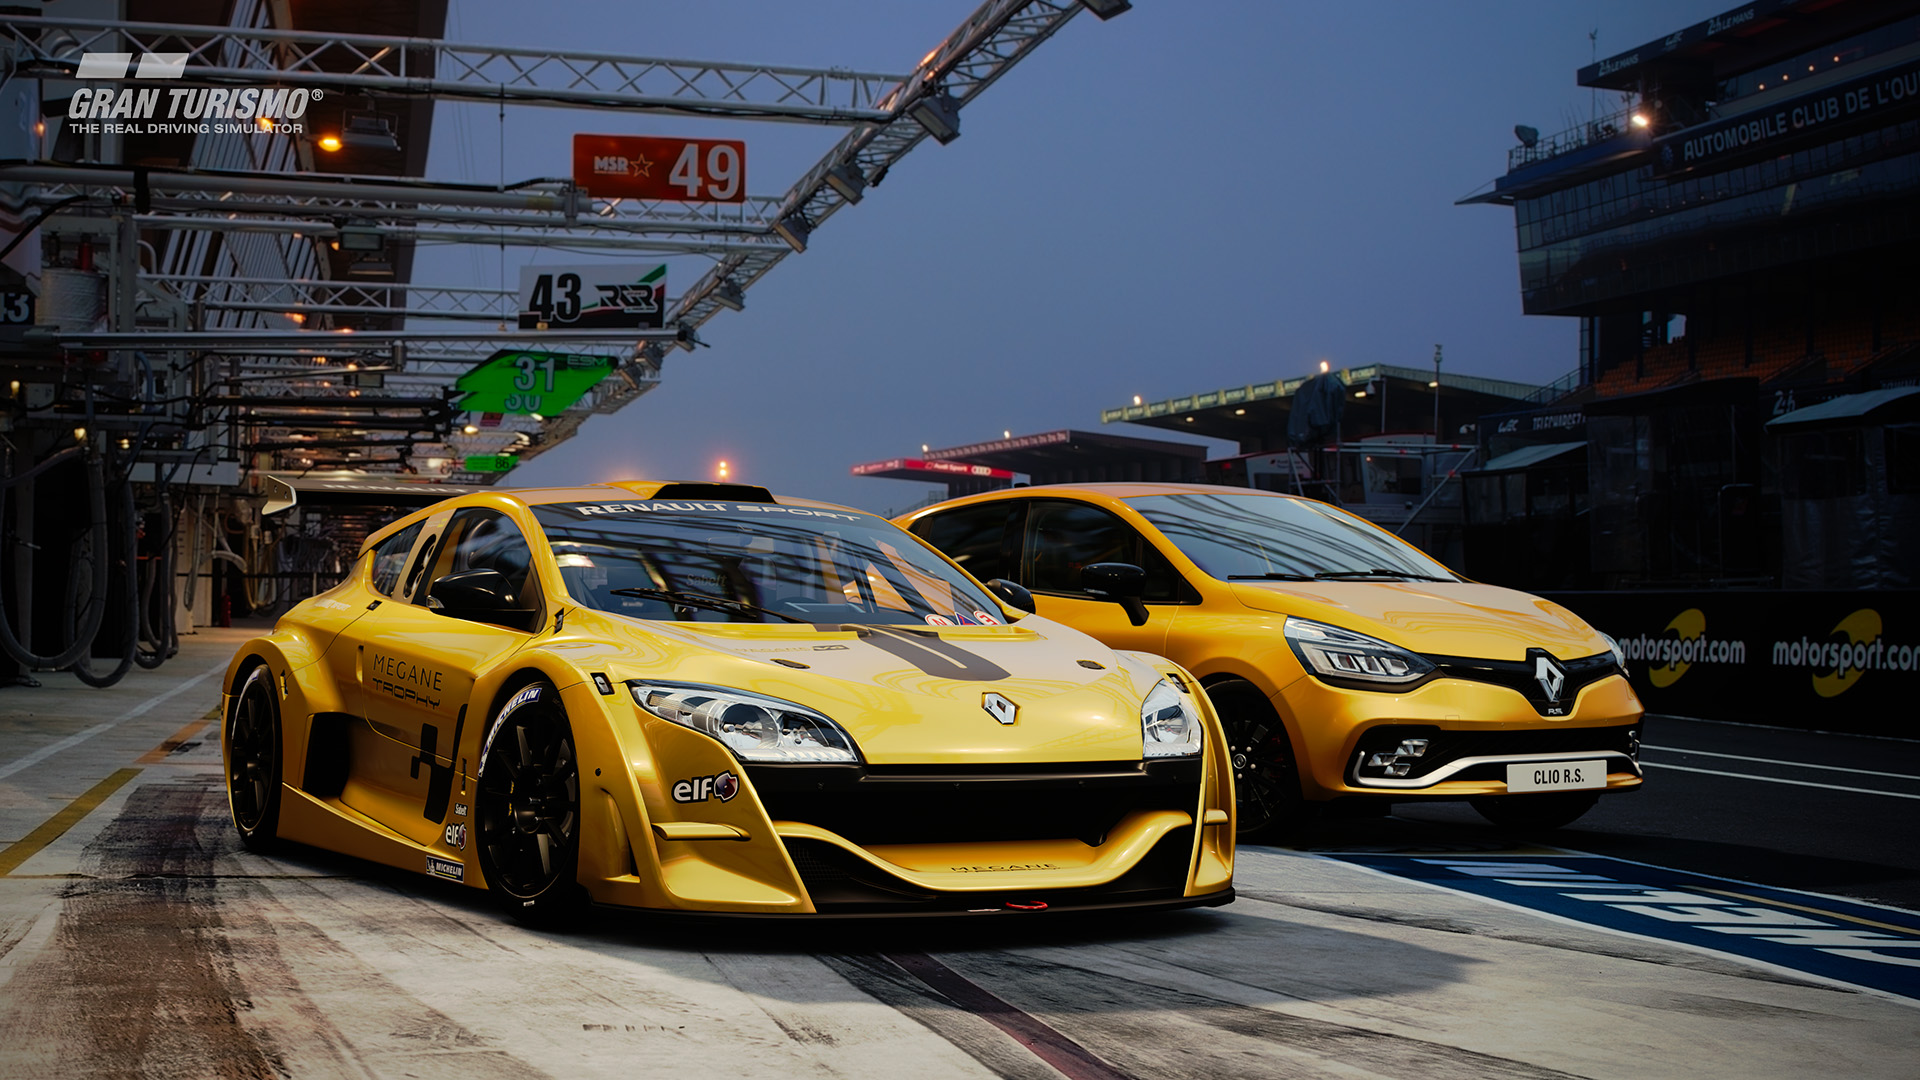 Free Nine Gran In Le May New Cars Turismo Mans Sport' Gets And ymN8vnO0wP